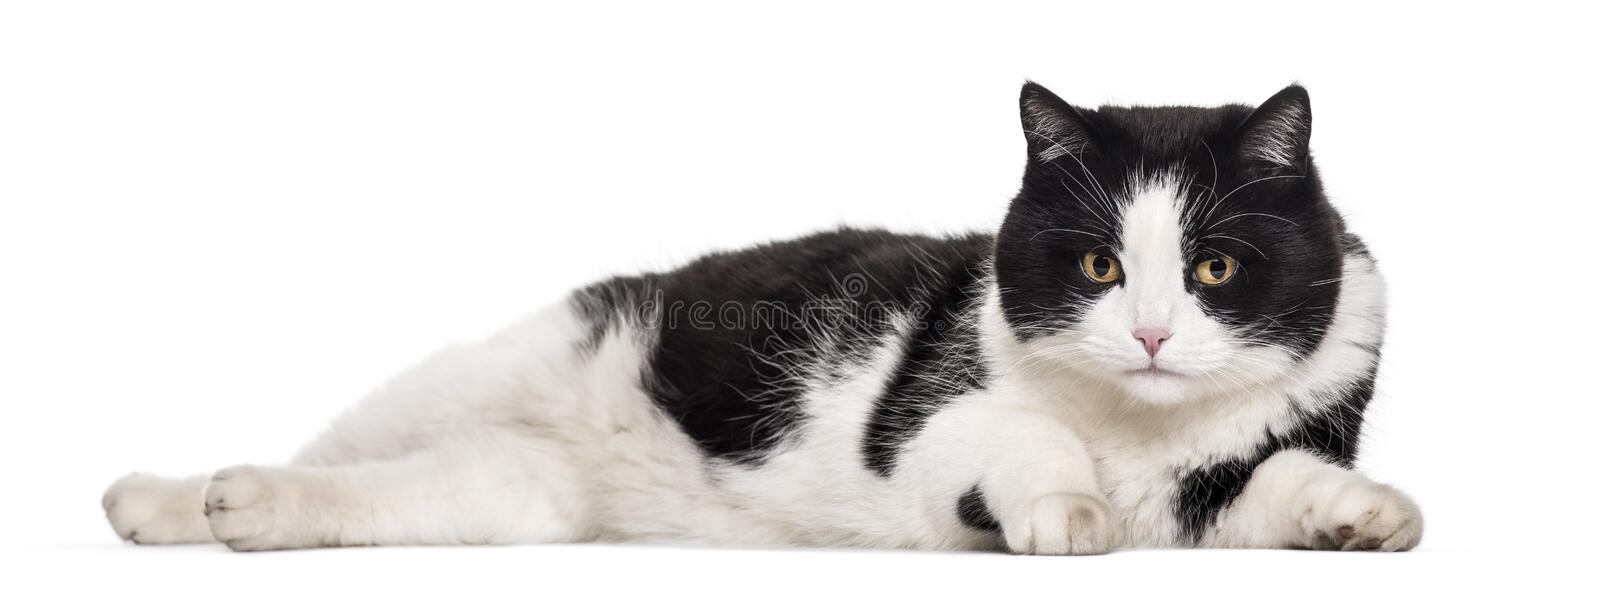 Mixed-breed cat lying against white background royalty free stock photo